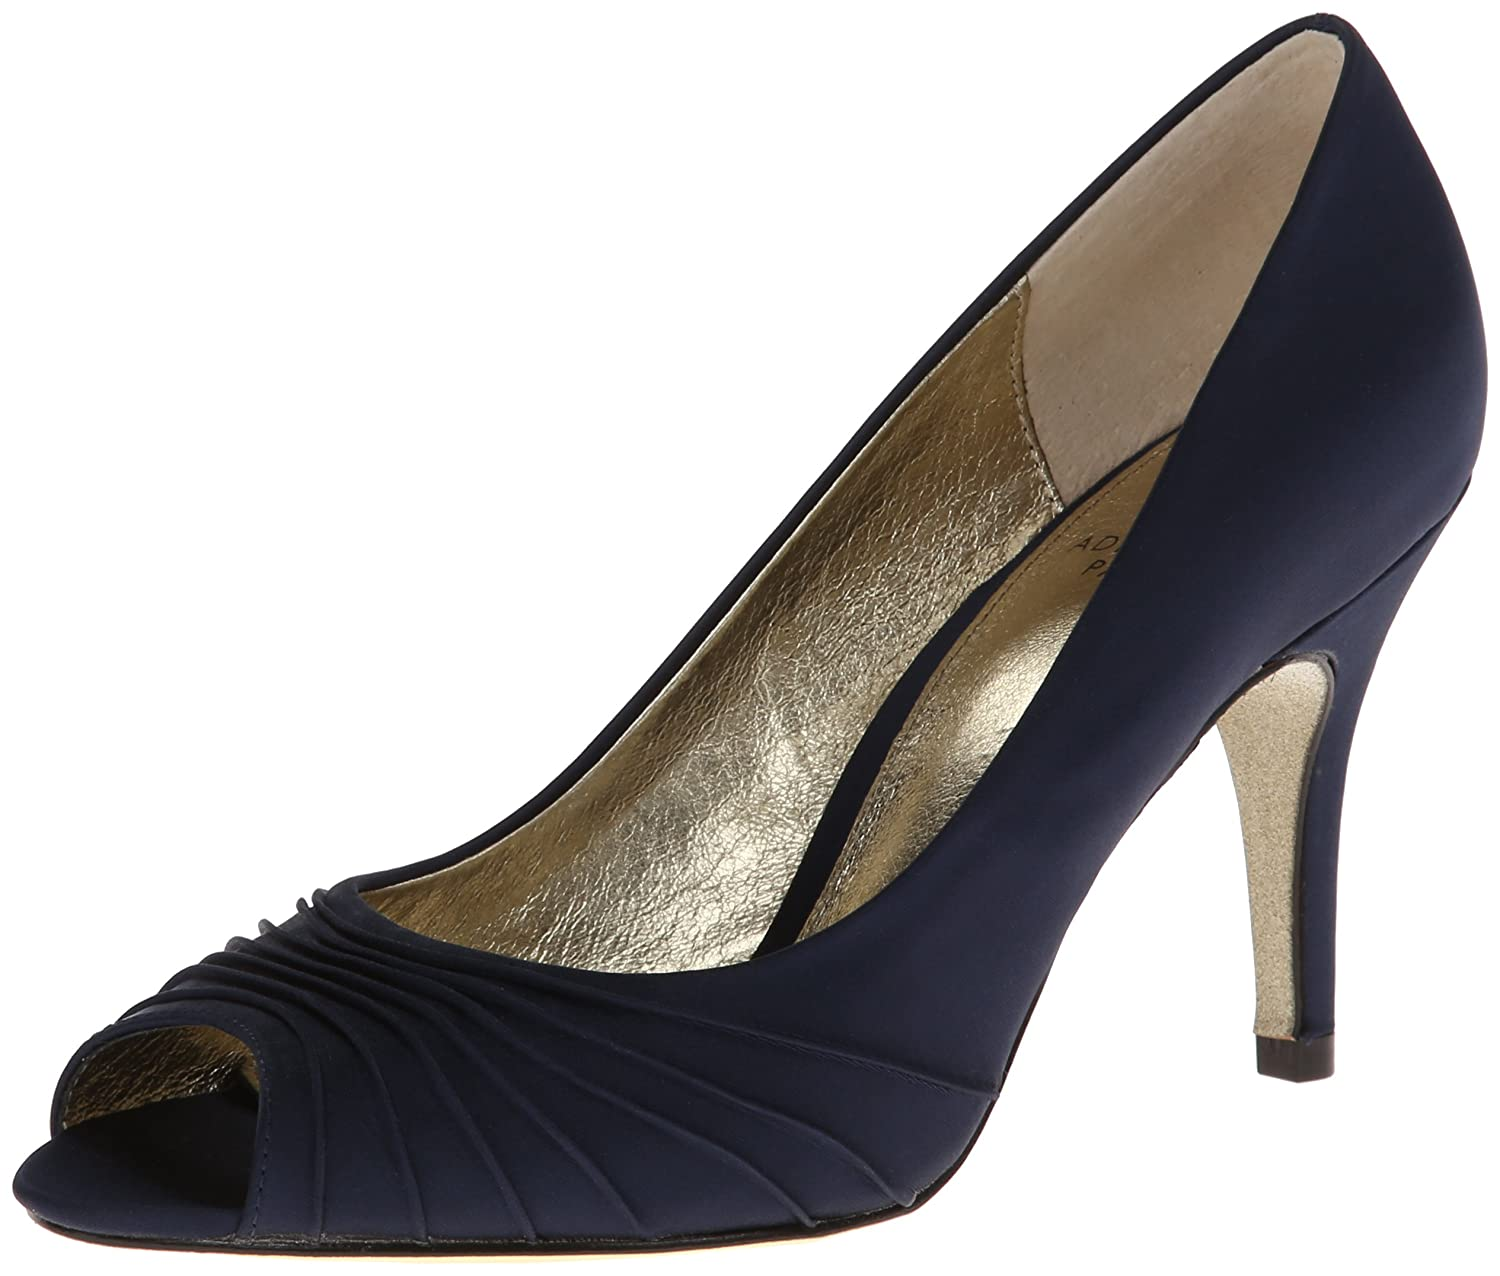 a40c9ac5cfd Adrianna Papell Women's Farrel Dress Pump